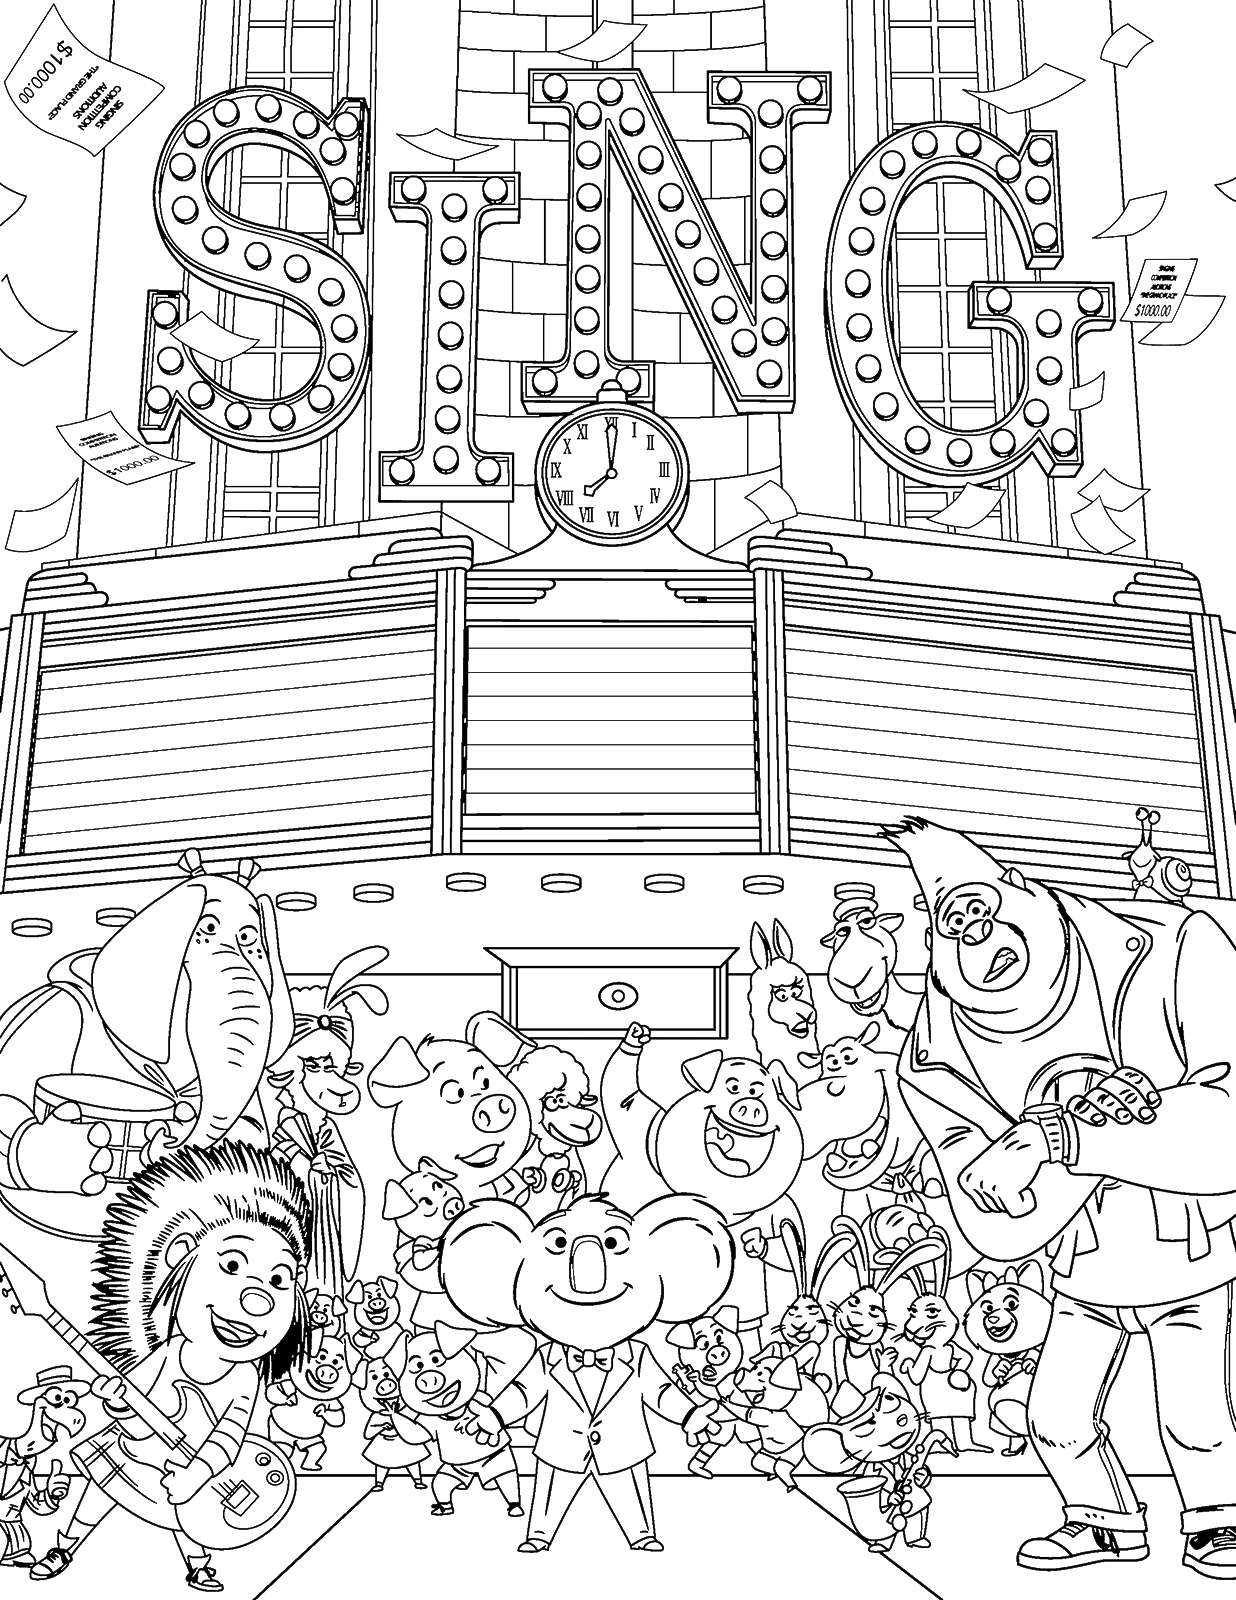 buster moon buster moon sing movie coloring page wecoloringpagecom moon buster